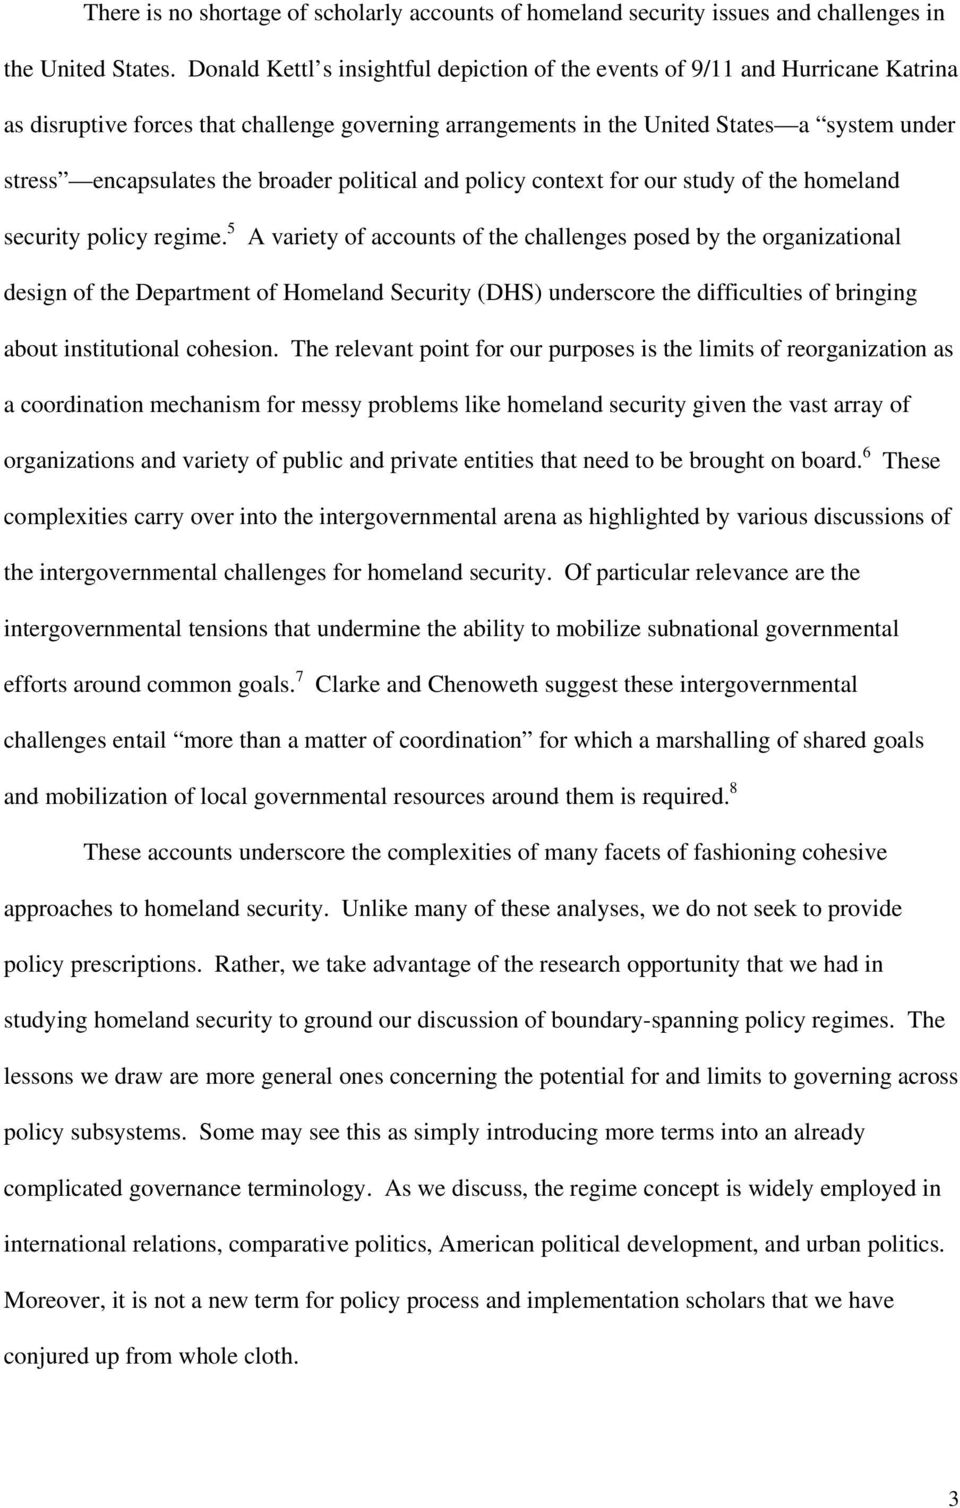 broader political and policy context for our study of the homeland security policy regime.